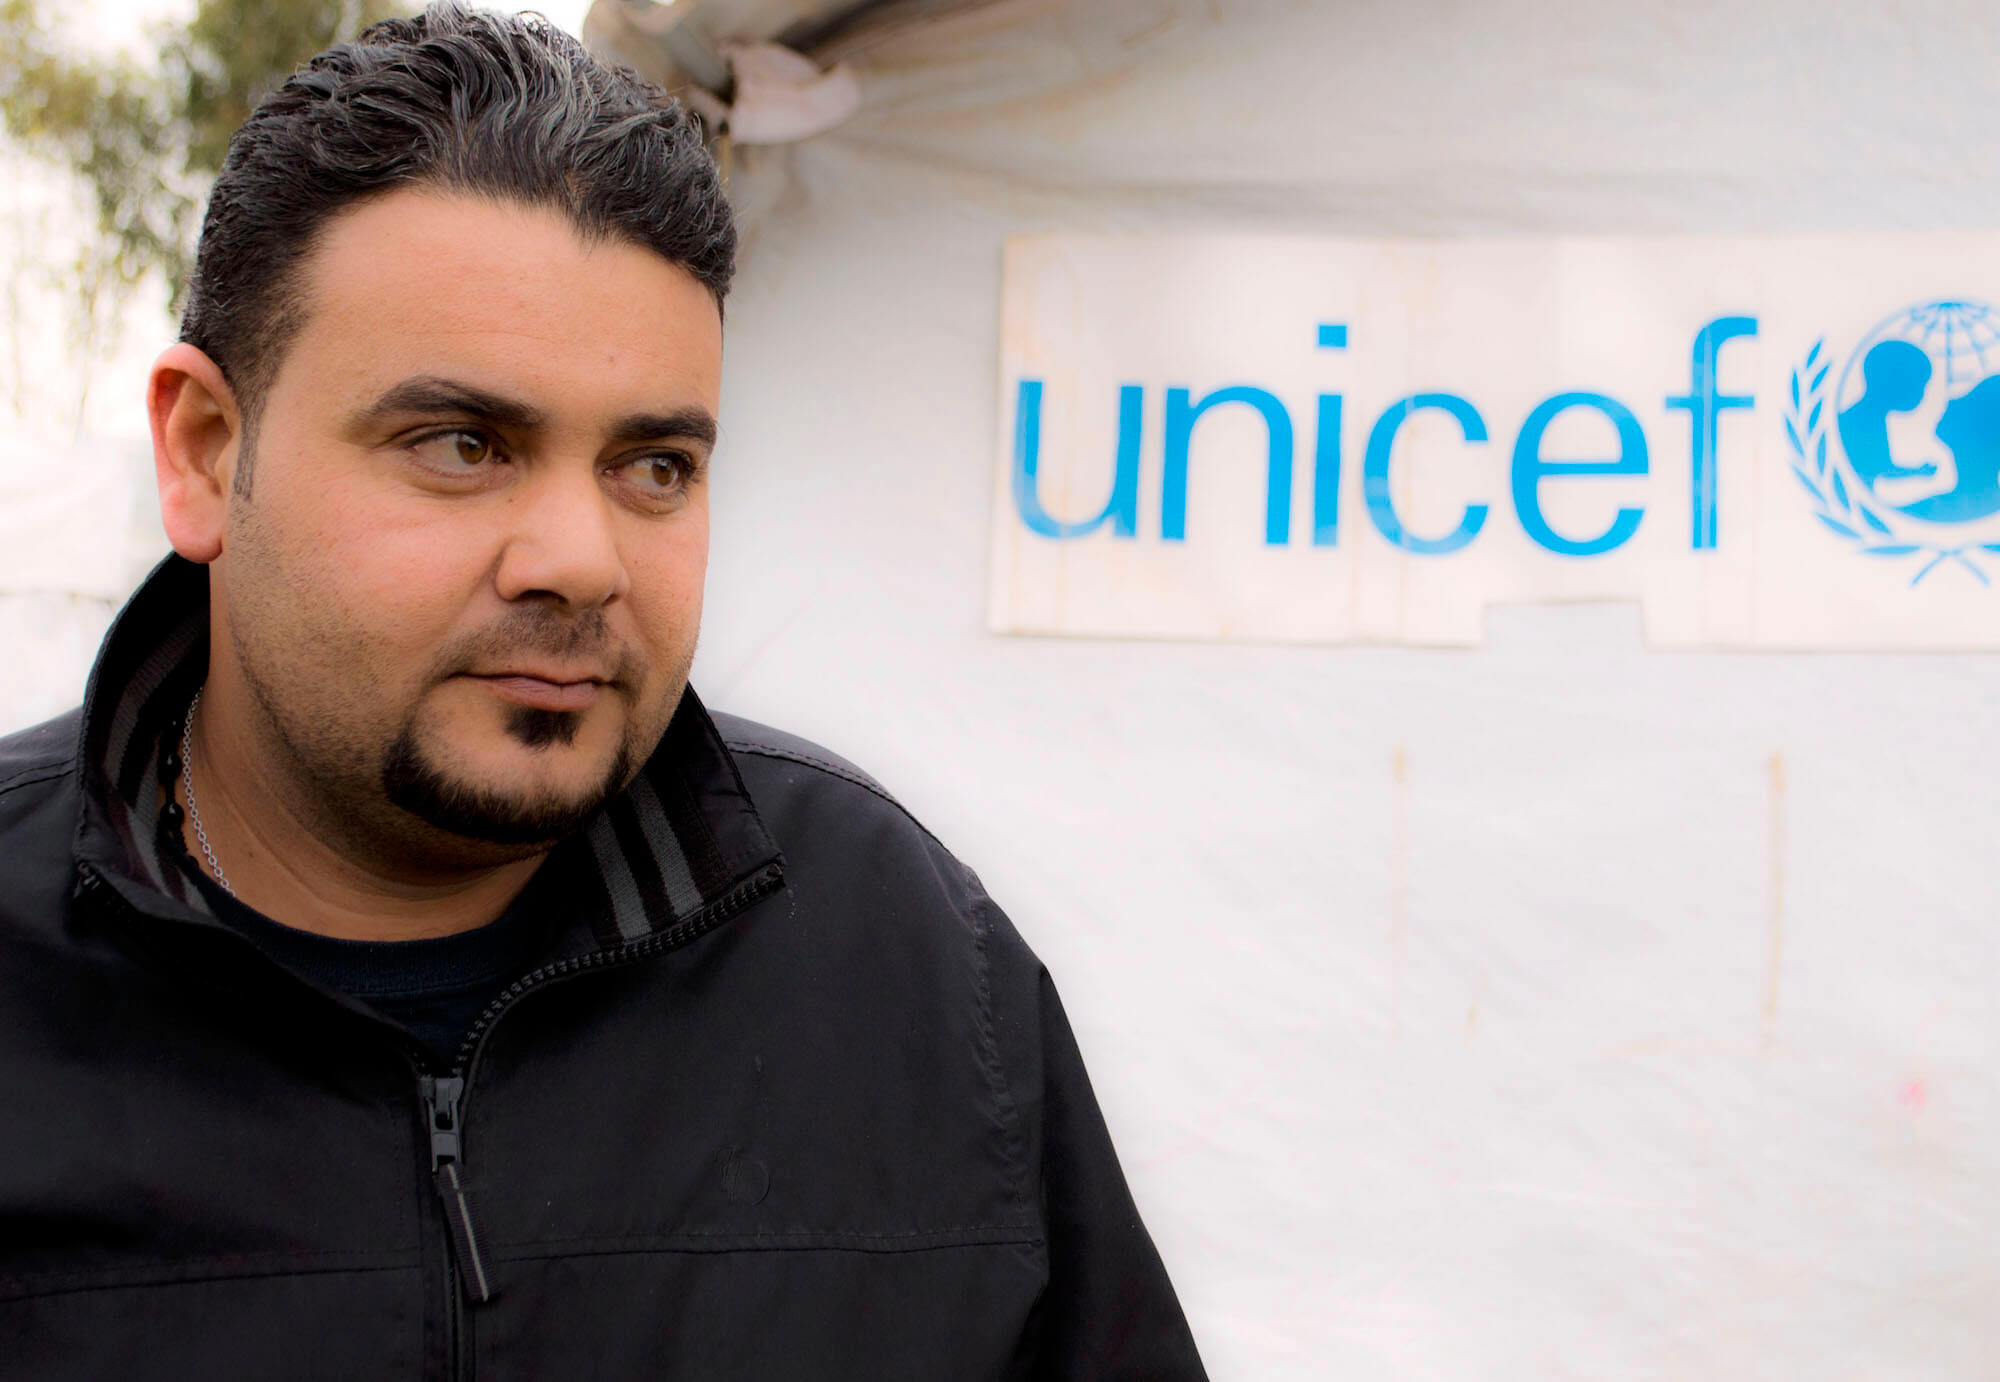 """Ahmad Adiyab says being a Palestinian refugee in Iraq has been a curse. The Palestinian families at Bahaka are all one big family he says - everyone looks out for each other. But Adiyab says he doesn't want to have children - """"I don't want them to have the same life I have had."""" (Photo: Abed Al Qaisi)"""